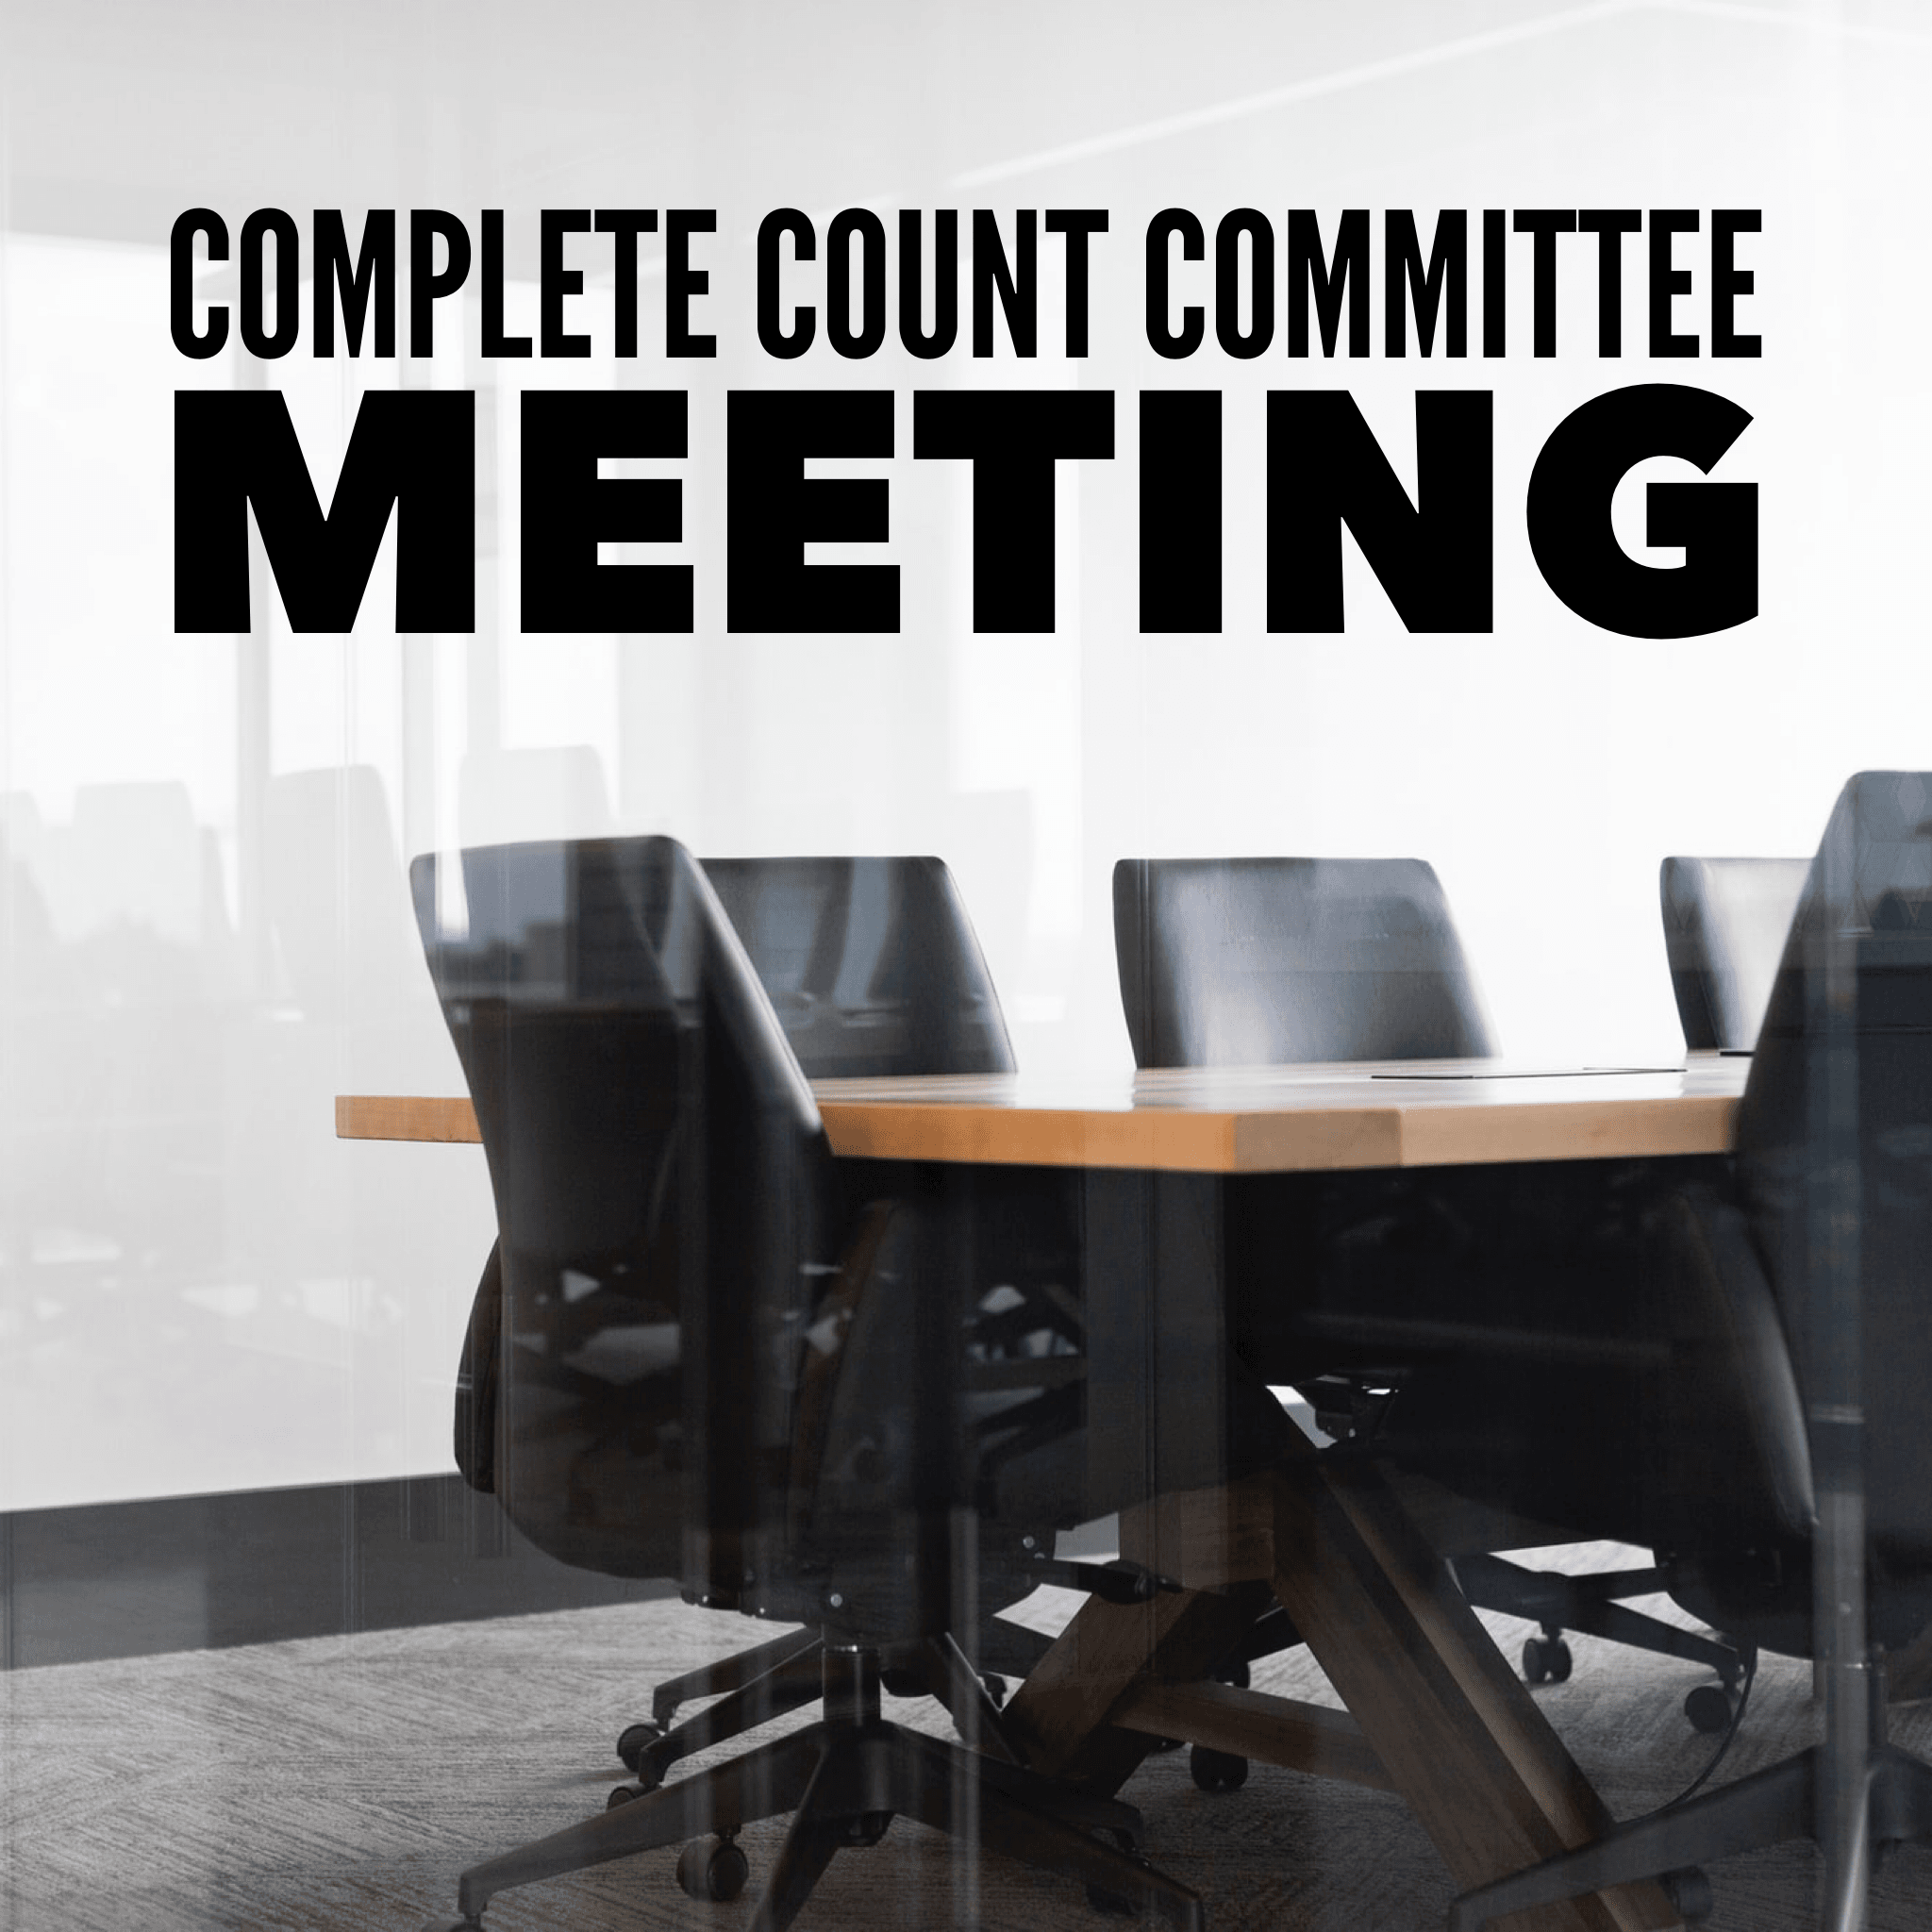 Complete Count Committee Meeting